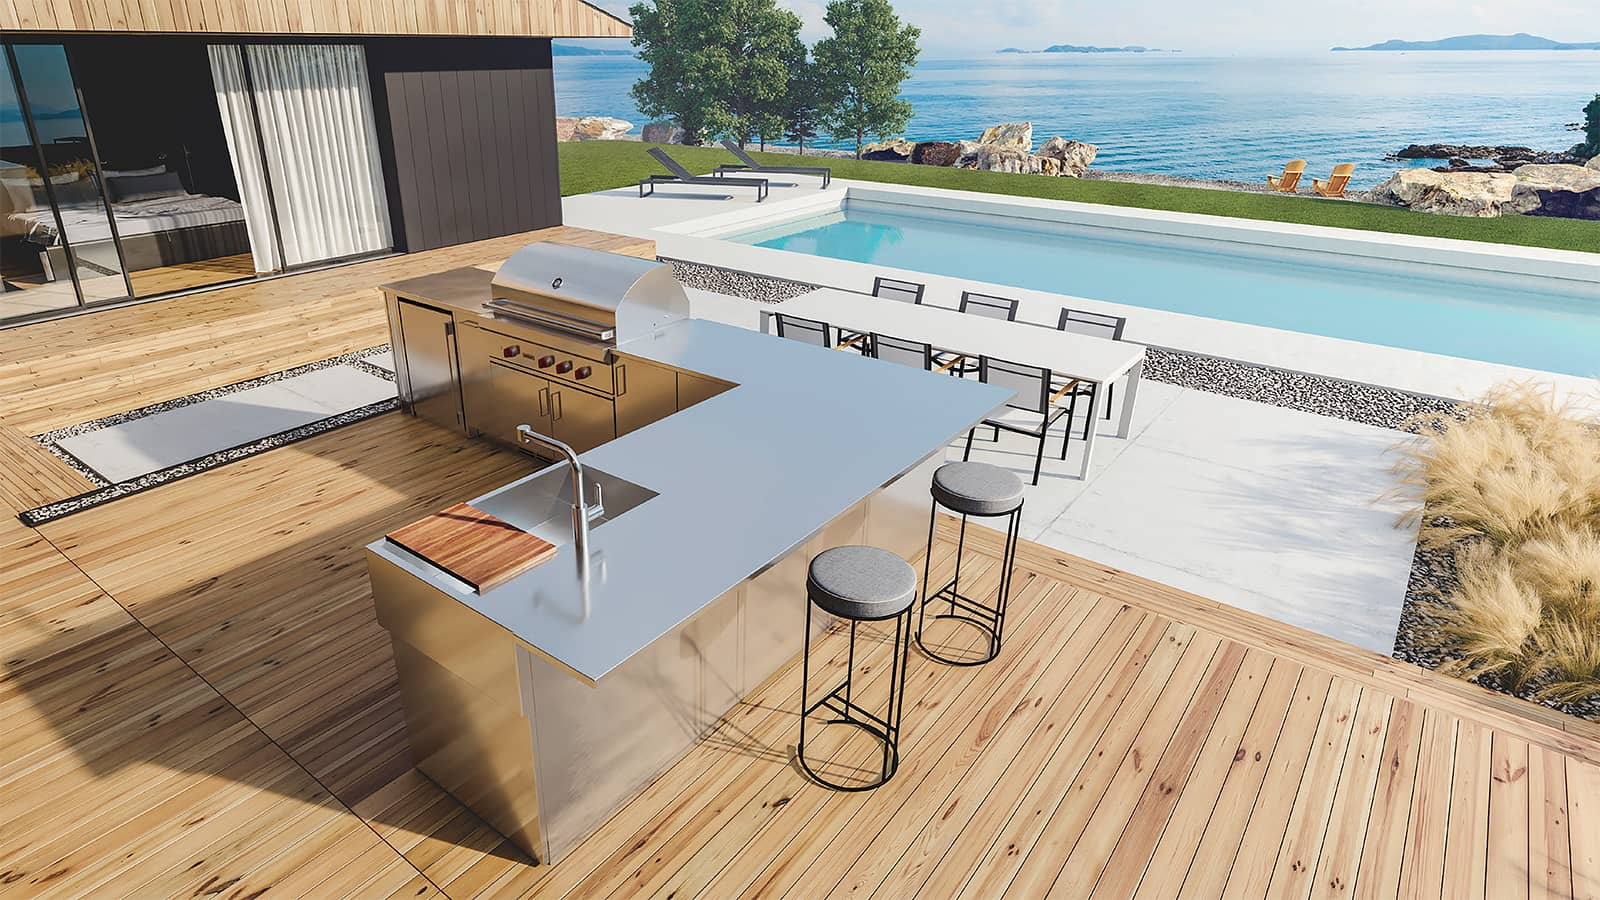 outdoor living renovation with new outdoor kitchen and deck